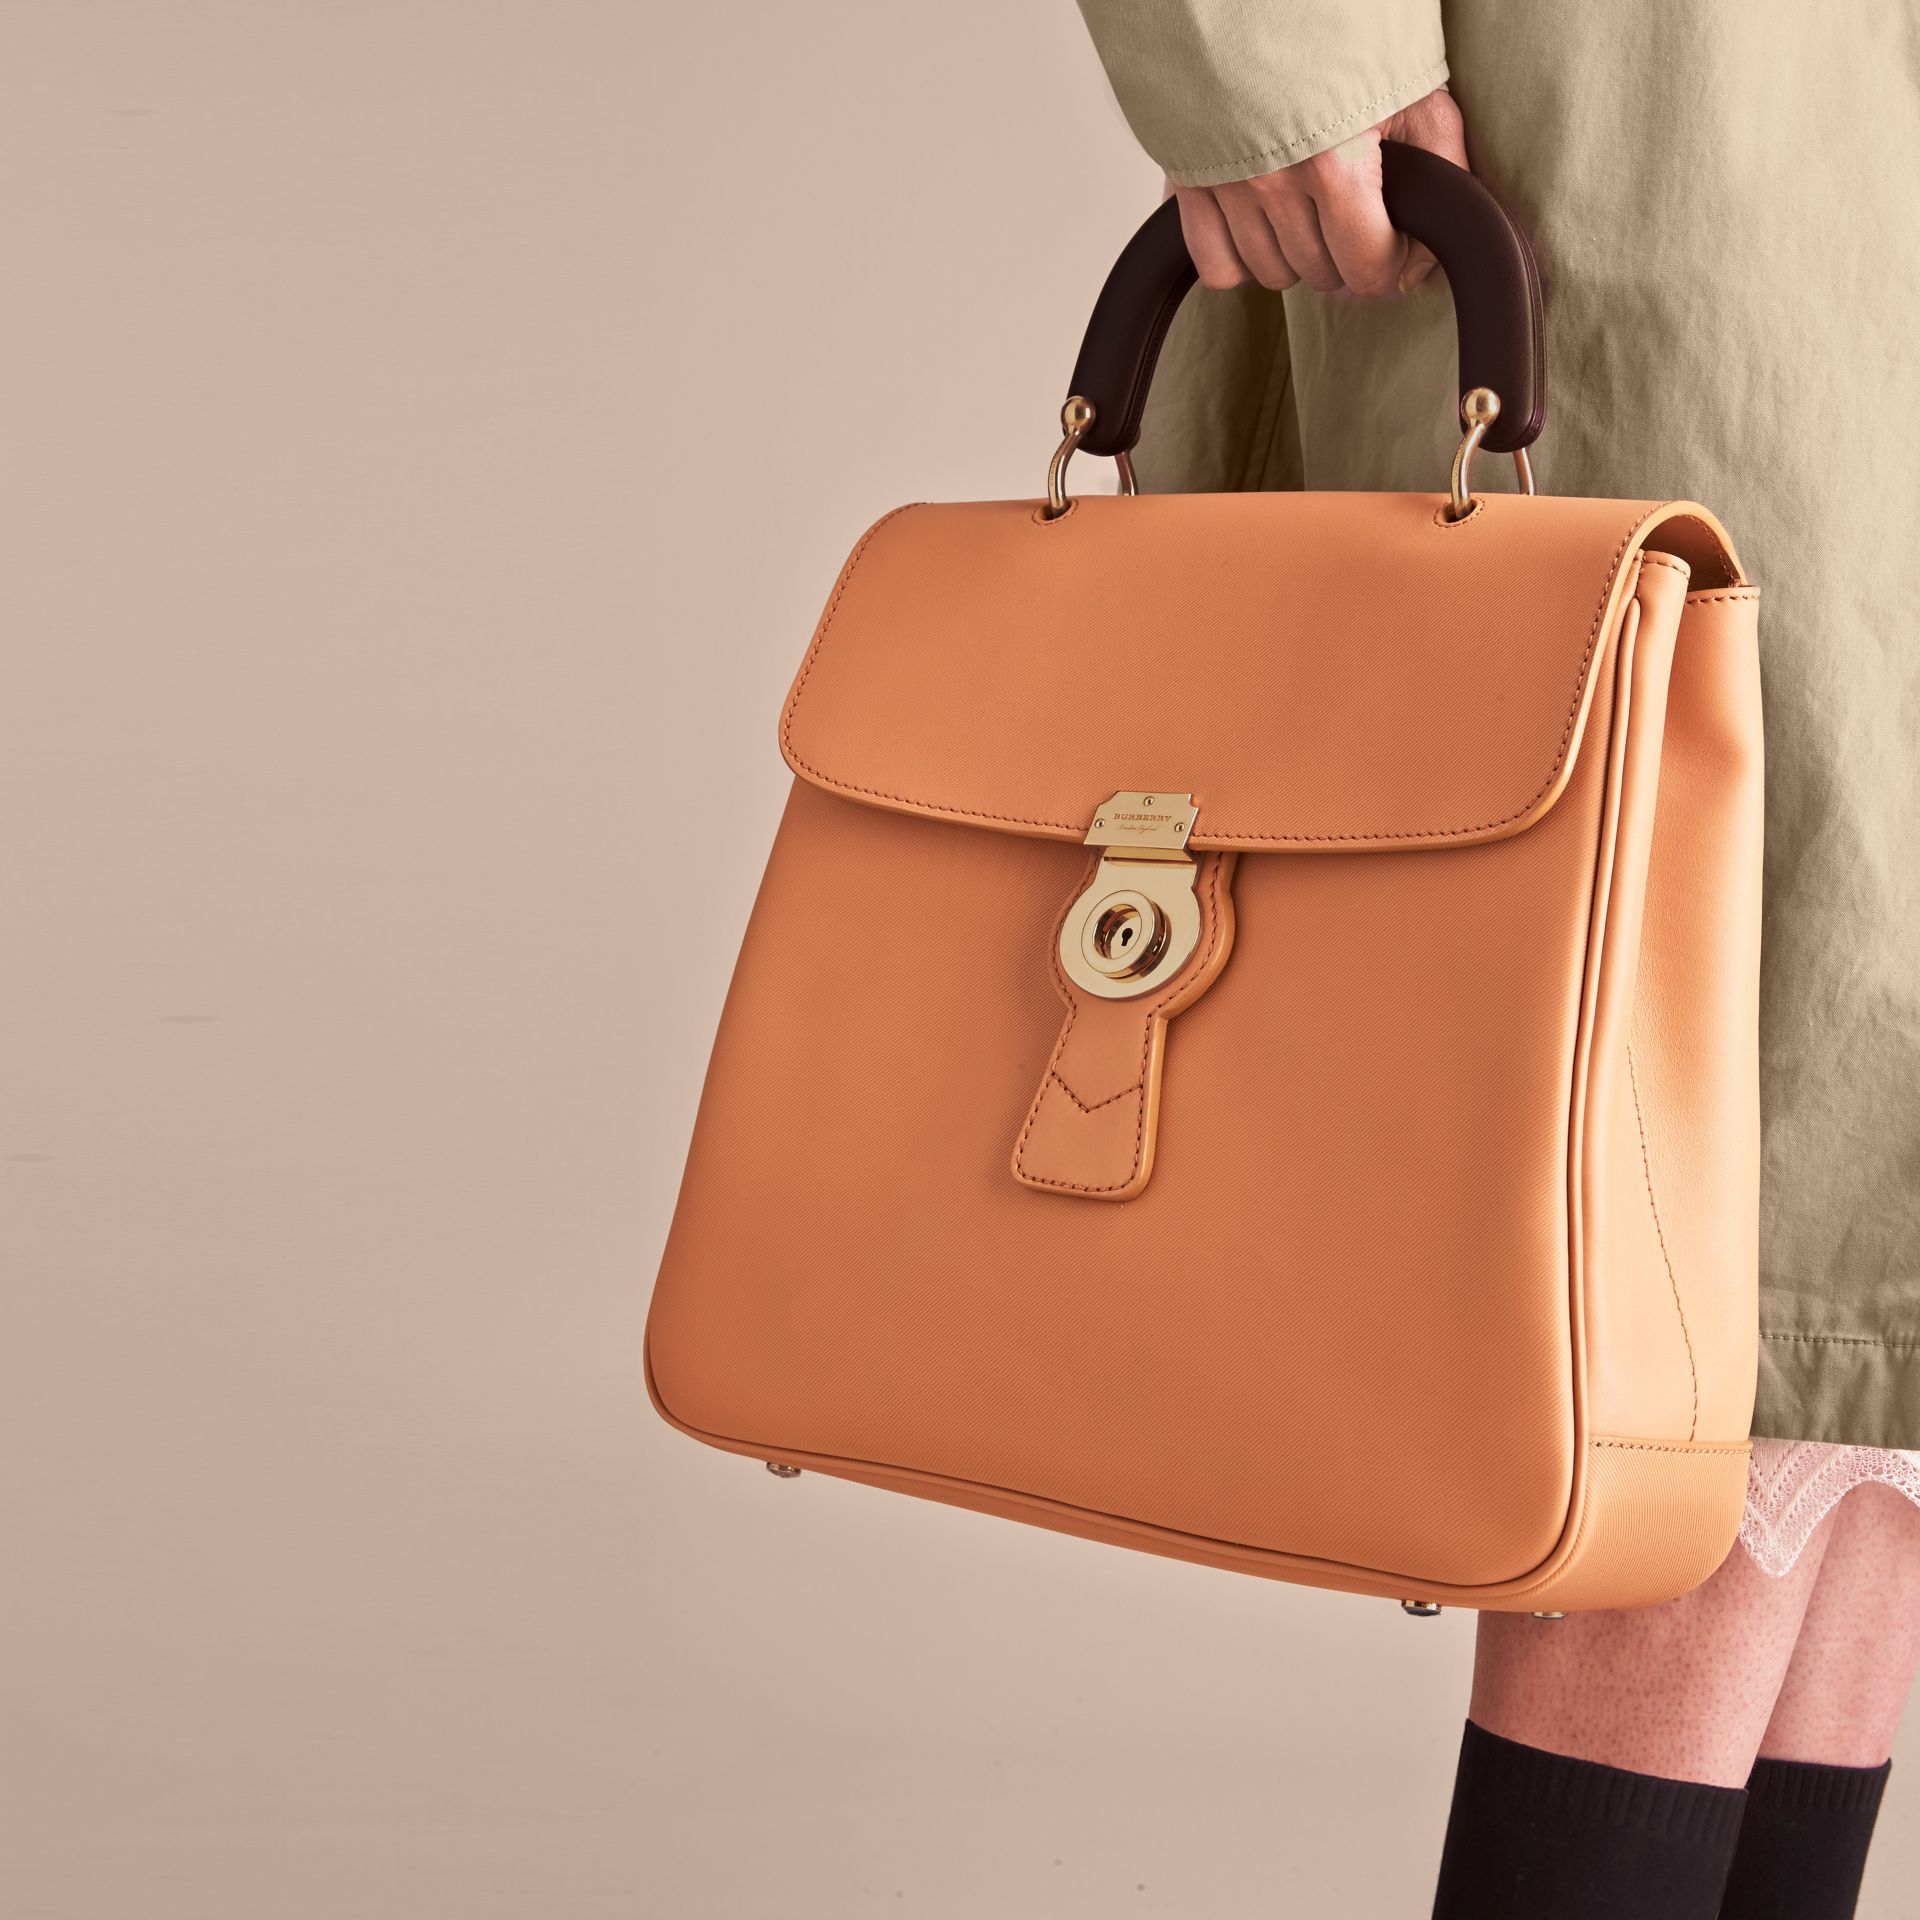 The Large DK88 Top Handle Bag in Pale Clementine - Women | Burberry Singapore - gallery image 8